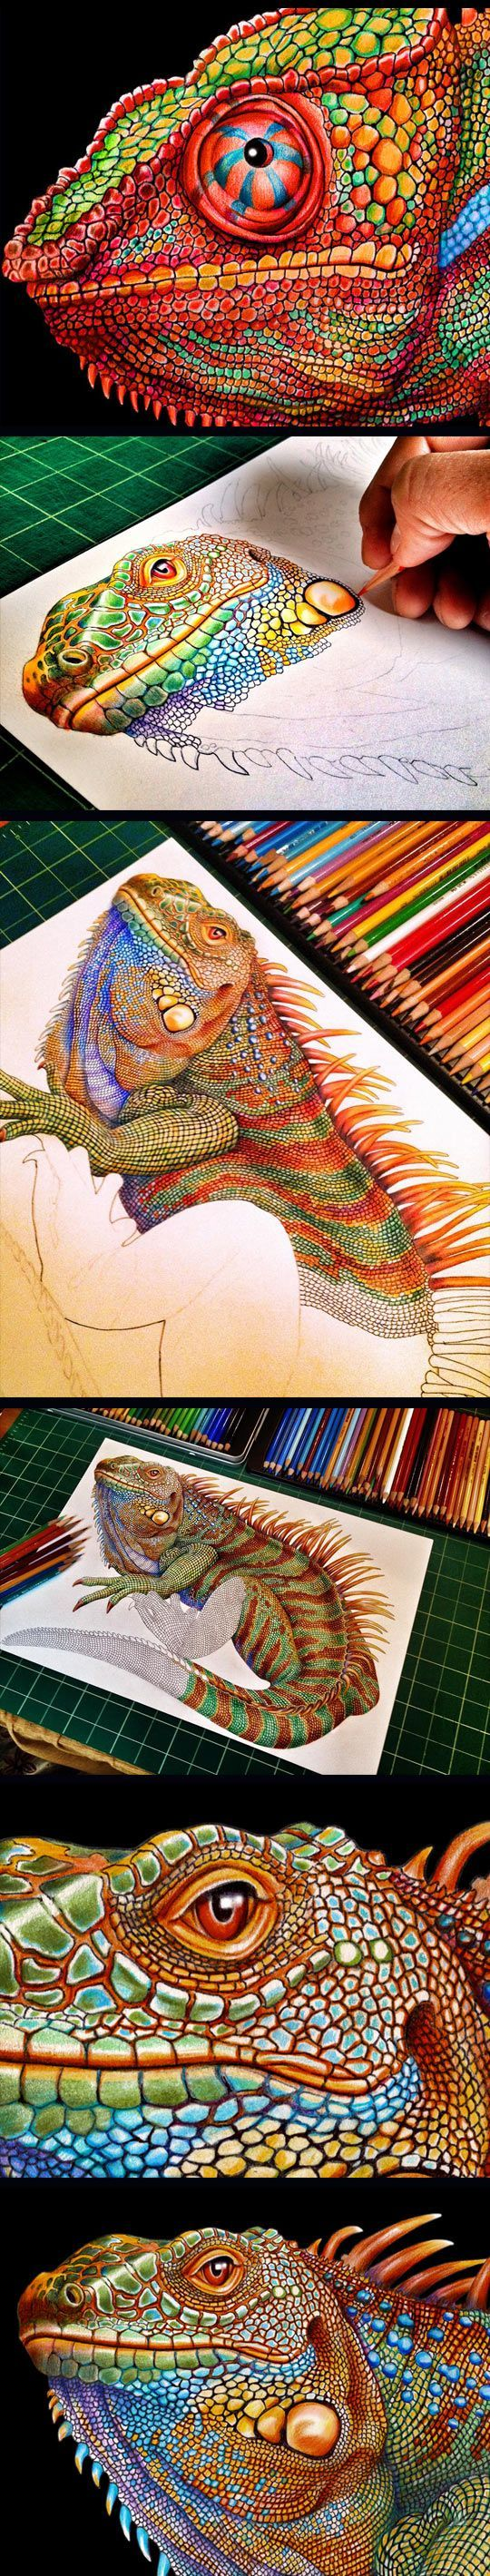 Detailed drawings of lizards